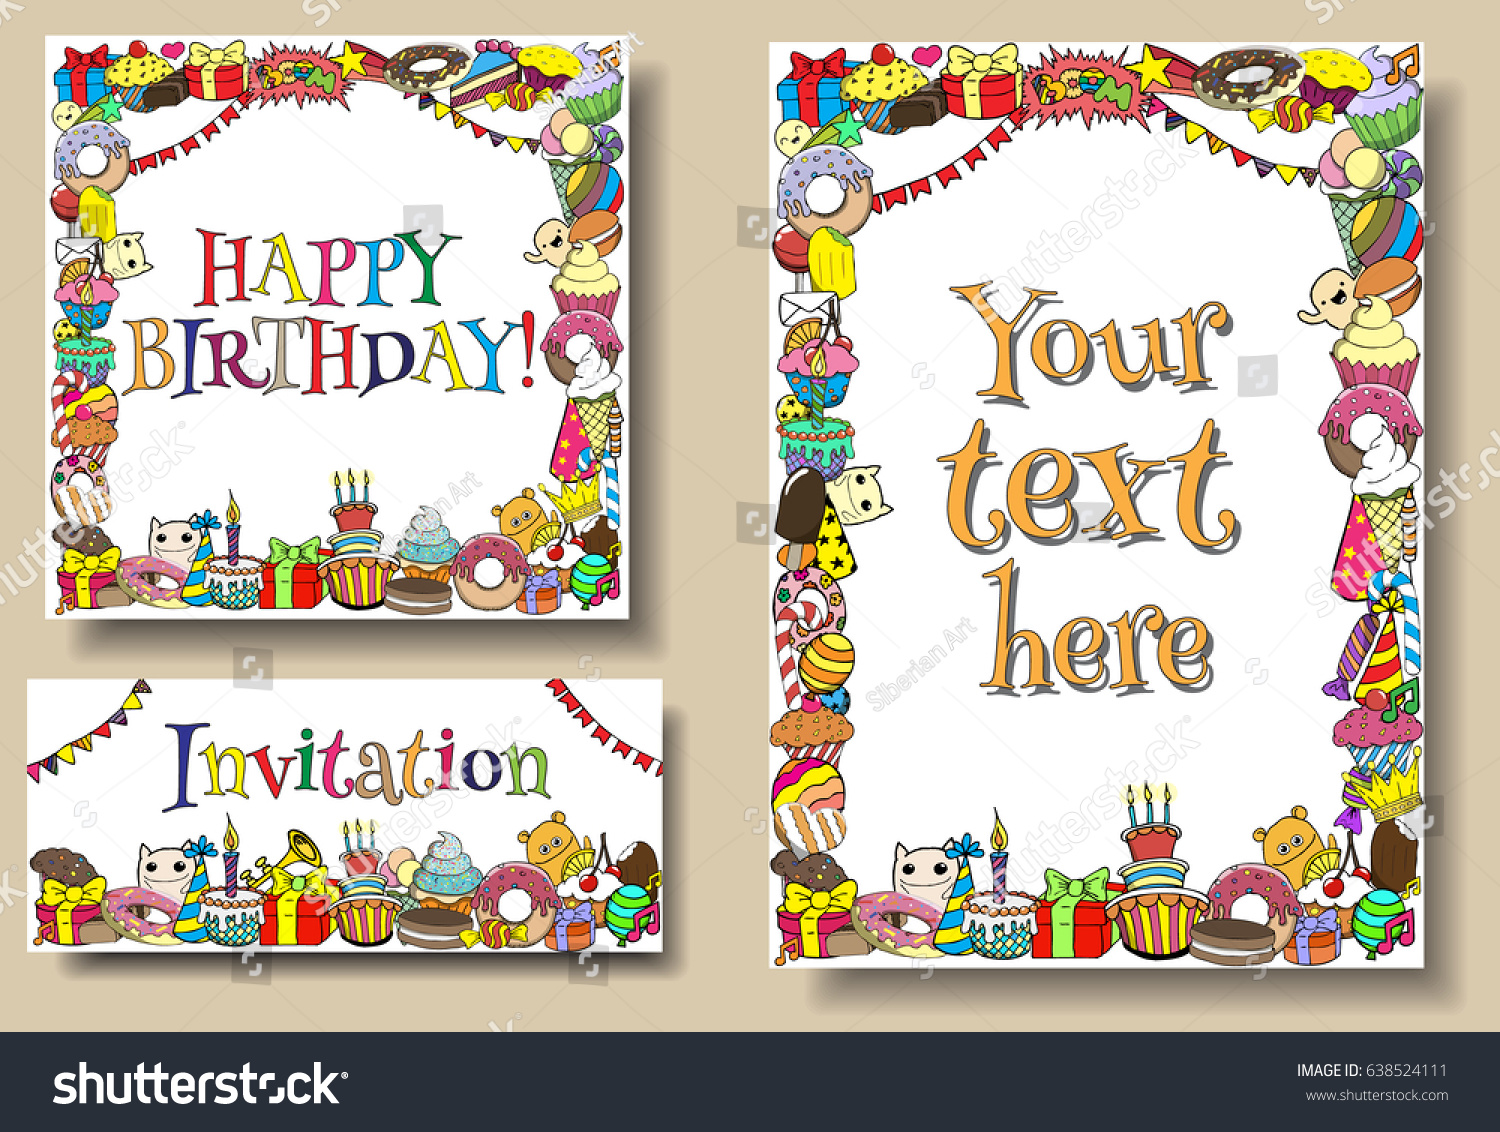 happy birthday card borders ; stock-photo-set-greeting-cards-birthday-party-templates-with-sweets-doodles-borders-638524111